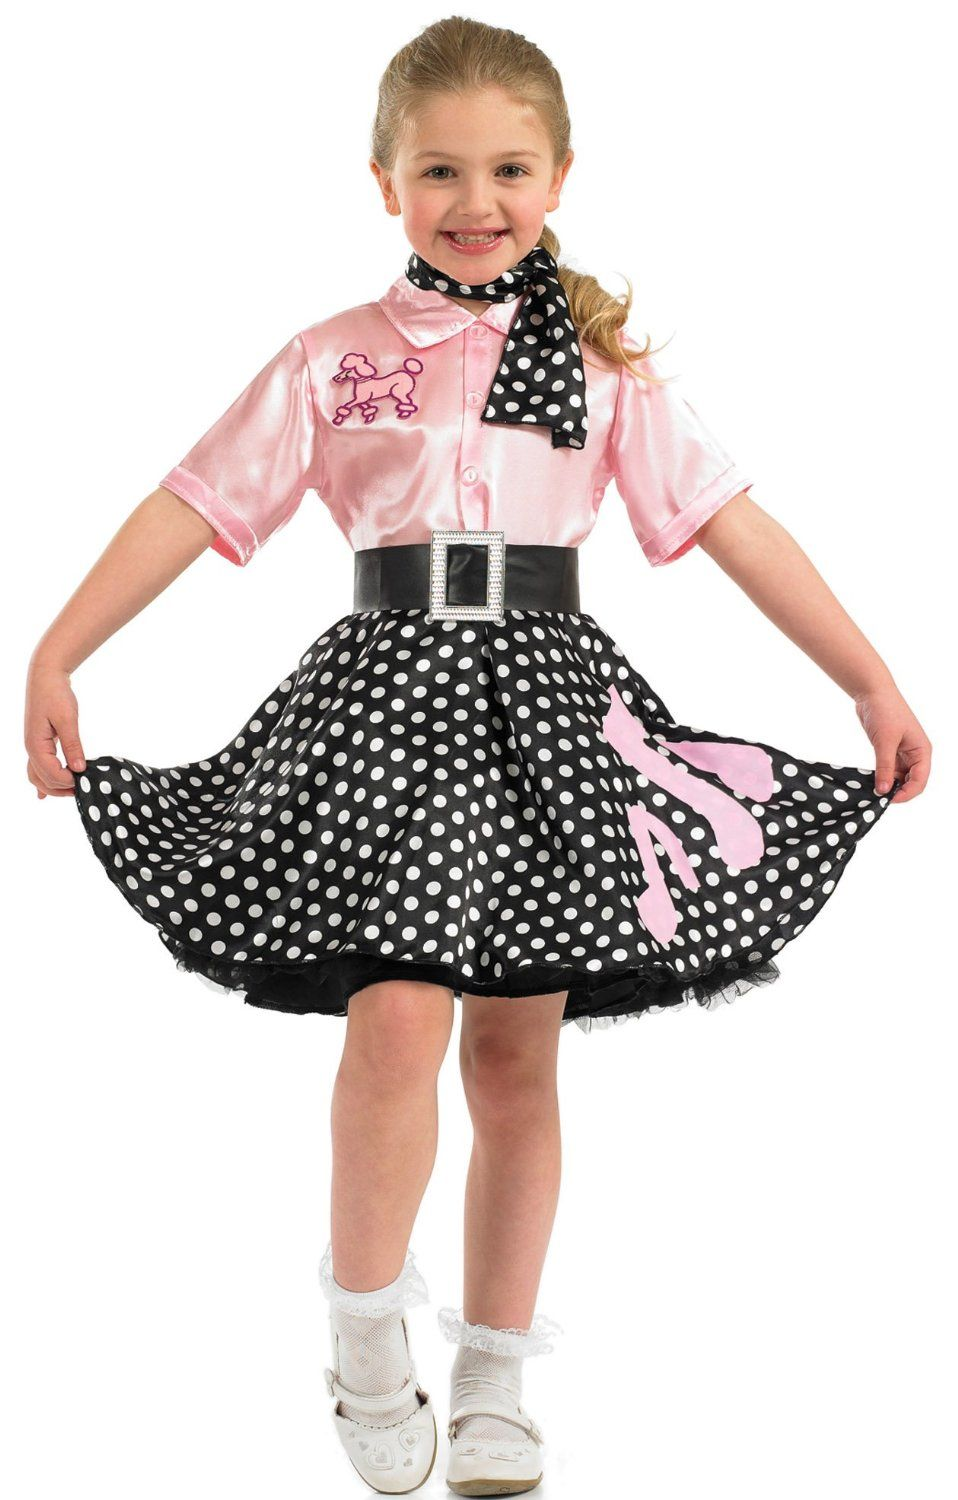 Fun Shack Child 50s Rock n Roll Costume AGE 4 6 YRS (S